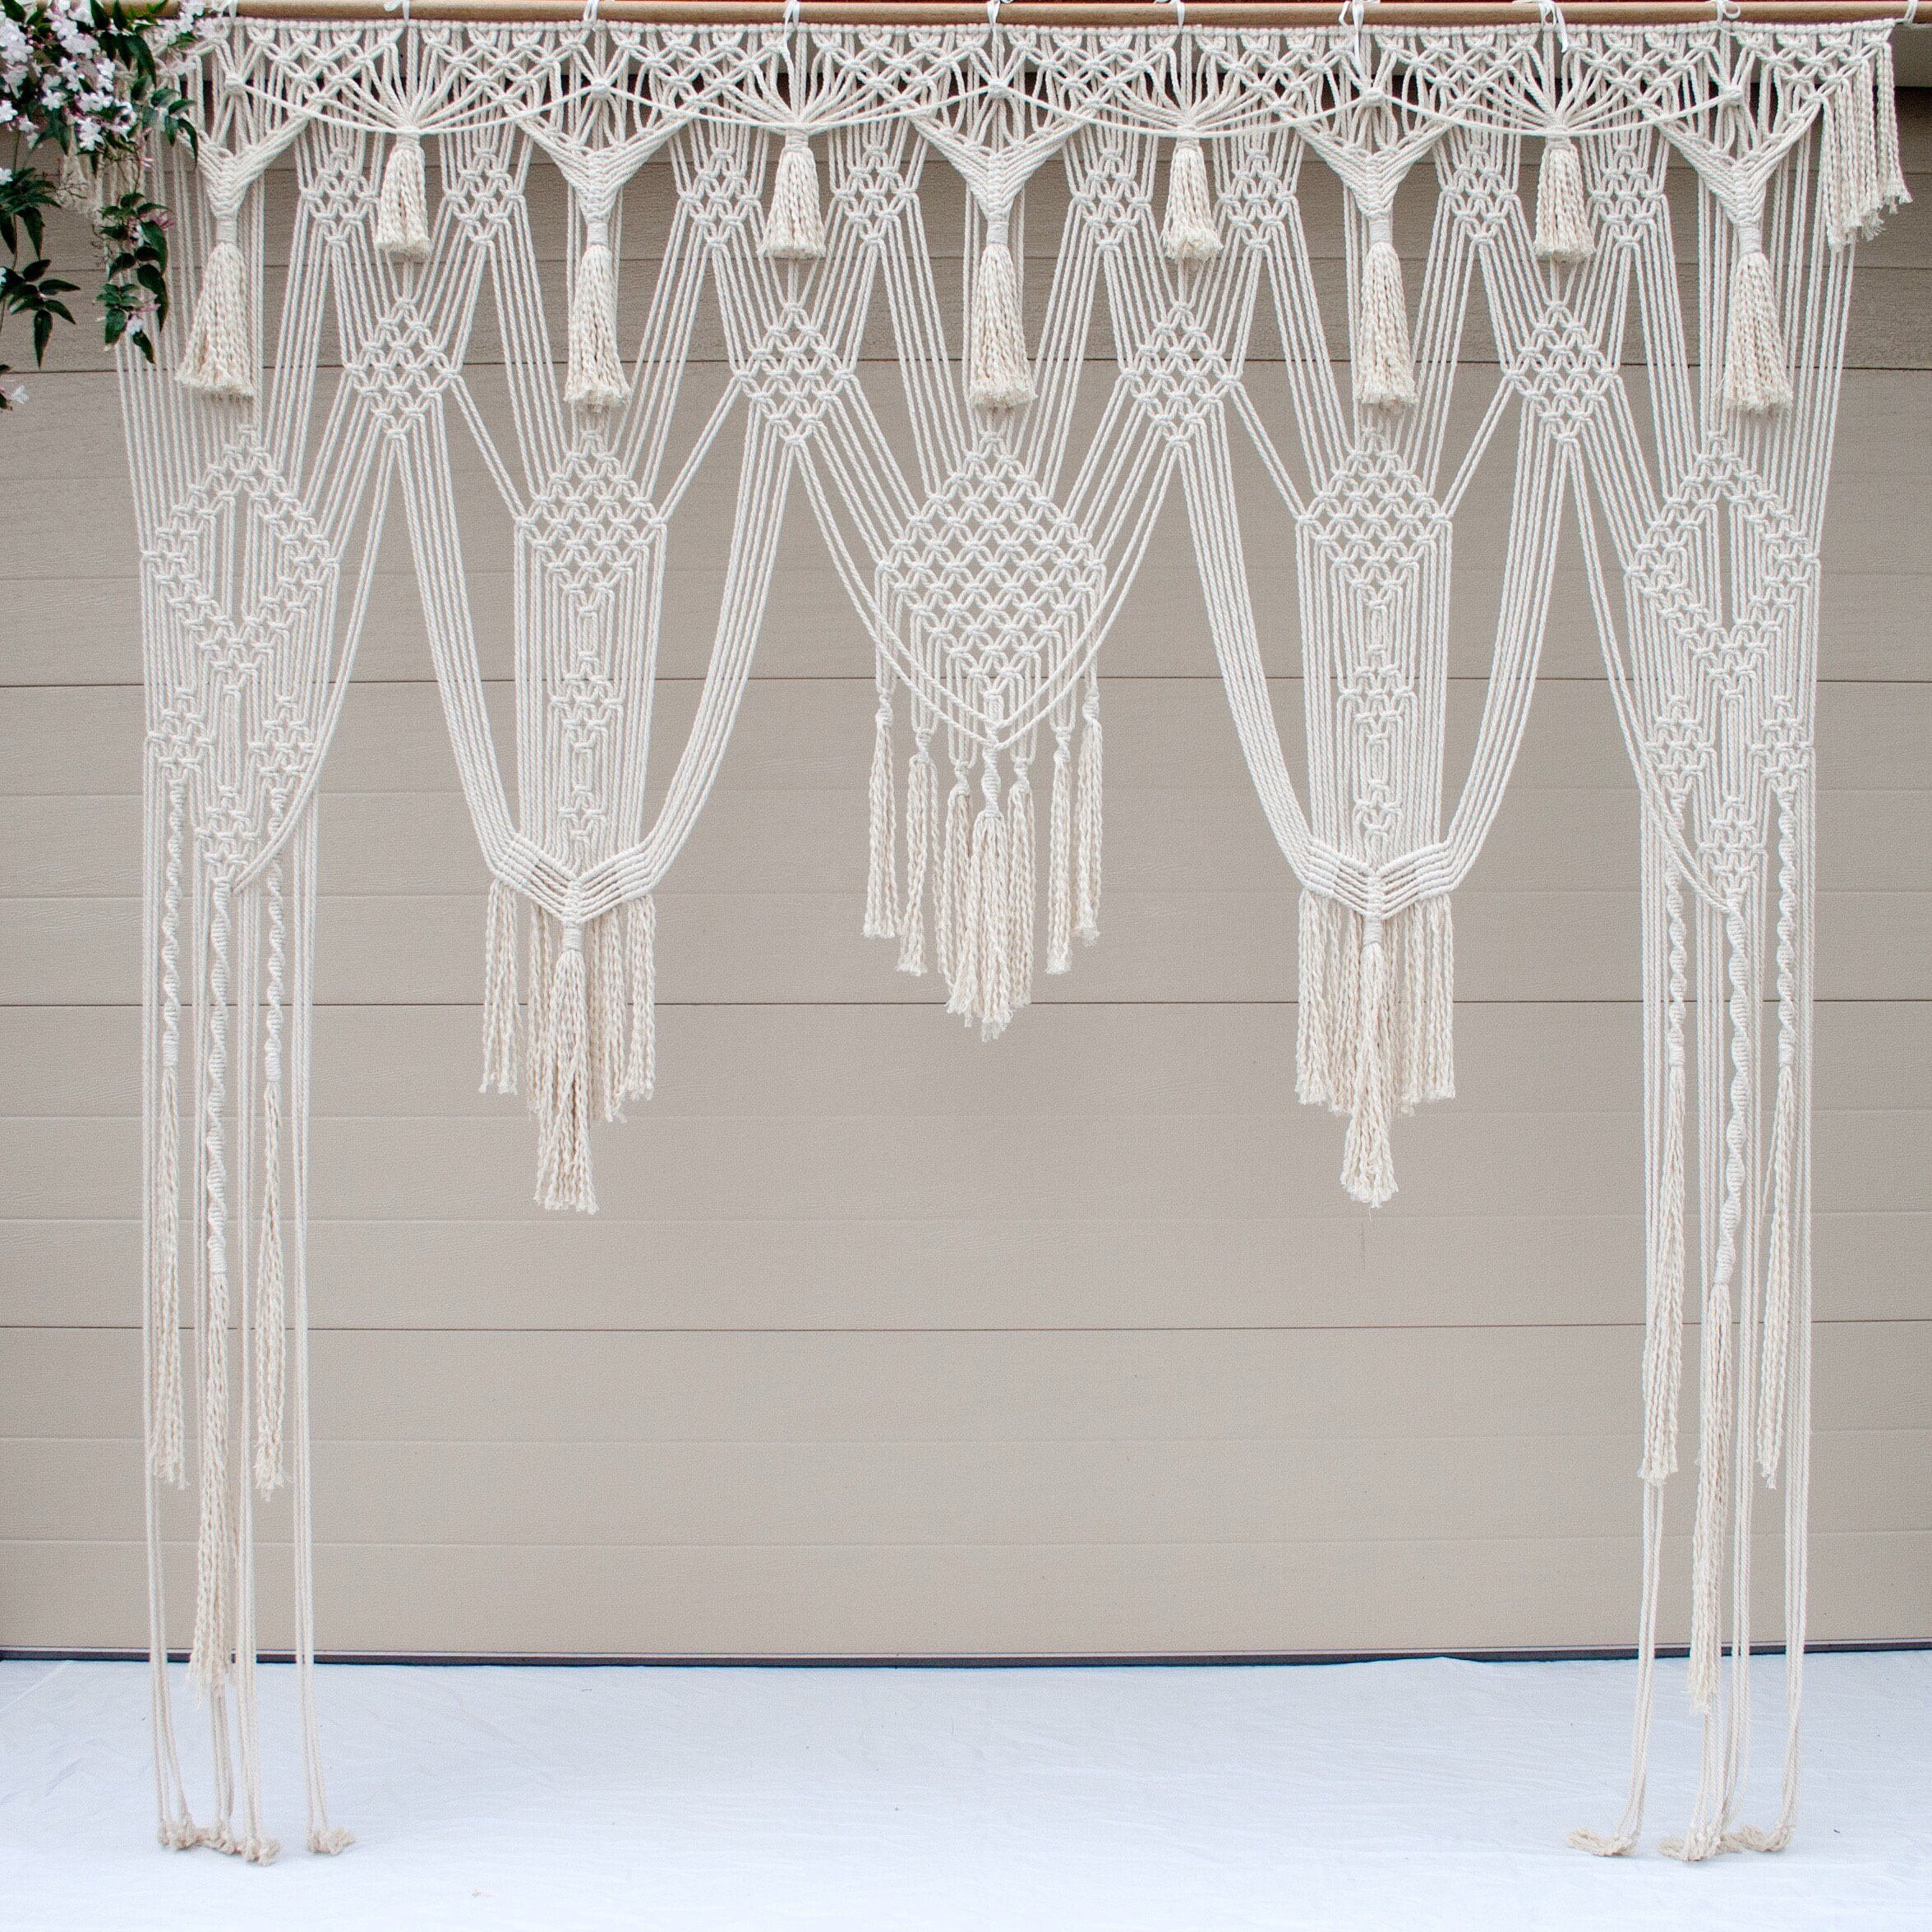 RISEON Large BOHO 79''W x 86''L Macrame Wedding Backdrop, Macrame Wedding Arch Arbor, Macrame Wall Hanging,Macrame Door Hanging,Room divider,macrame Curtains,Window Curtain for Decor at Ceremonies